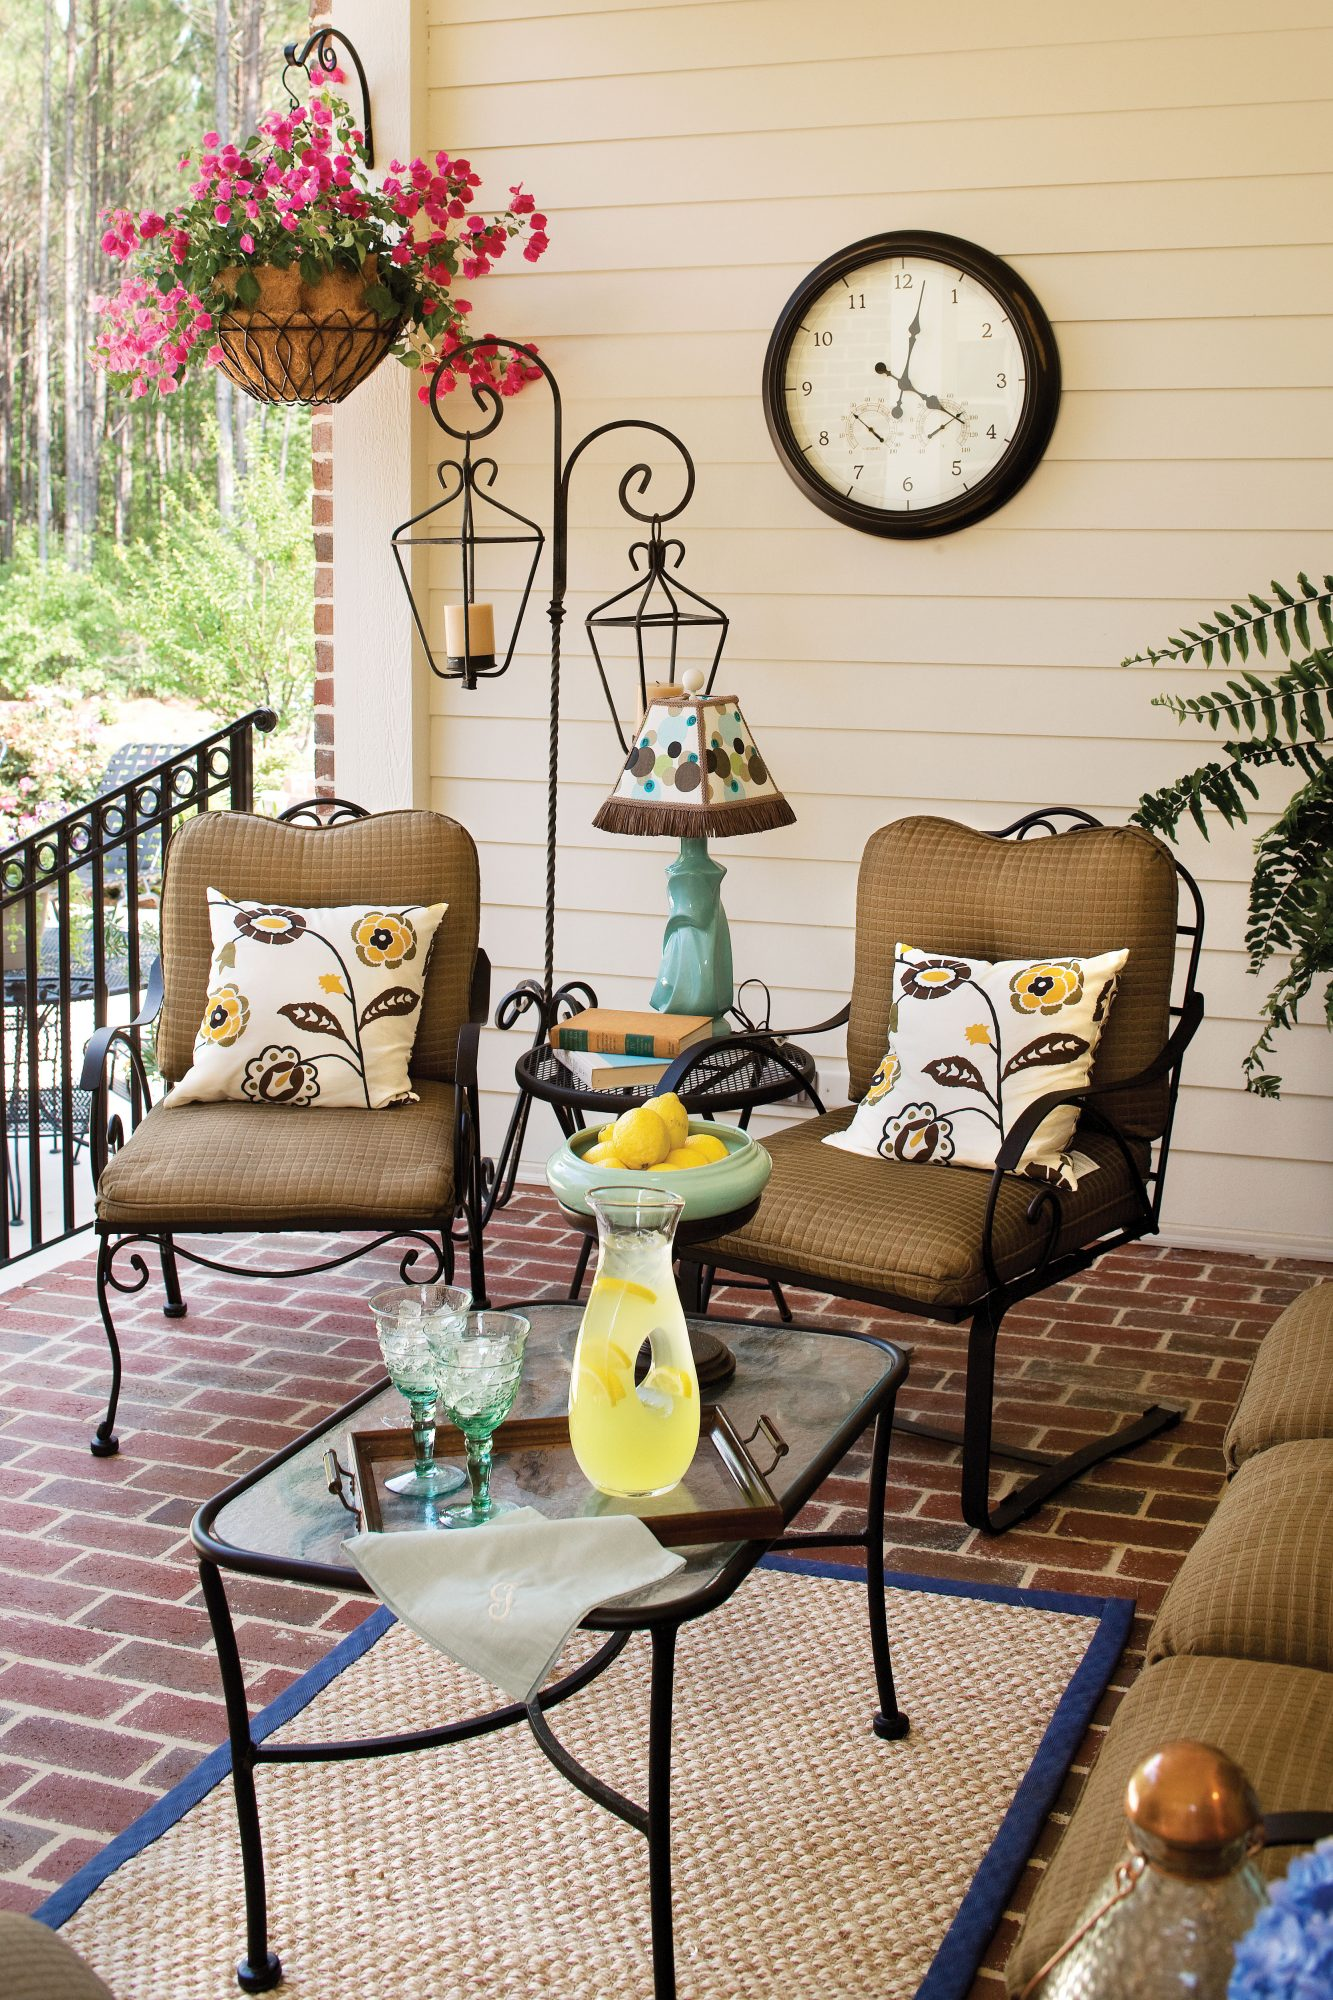 Hang Out on the Porch